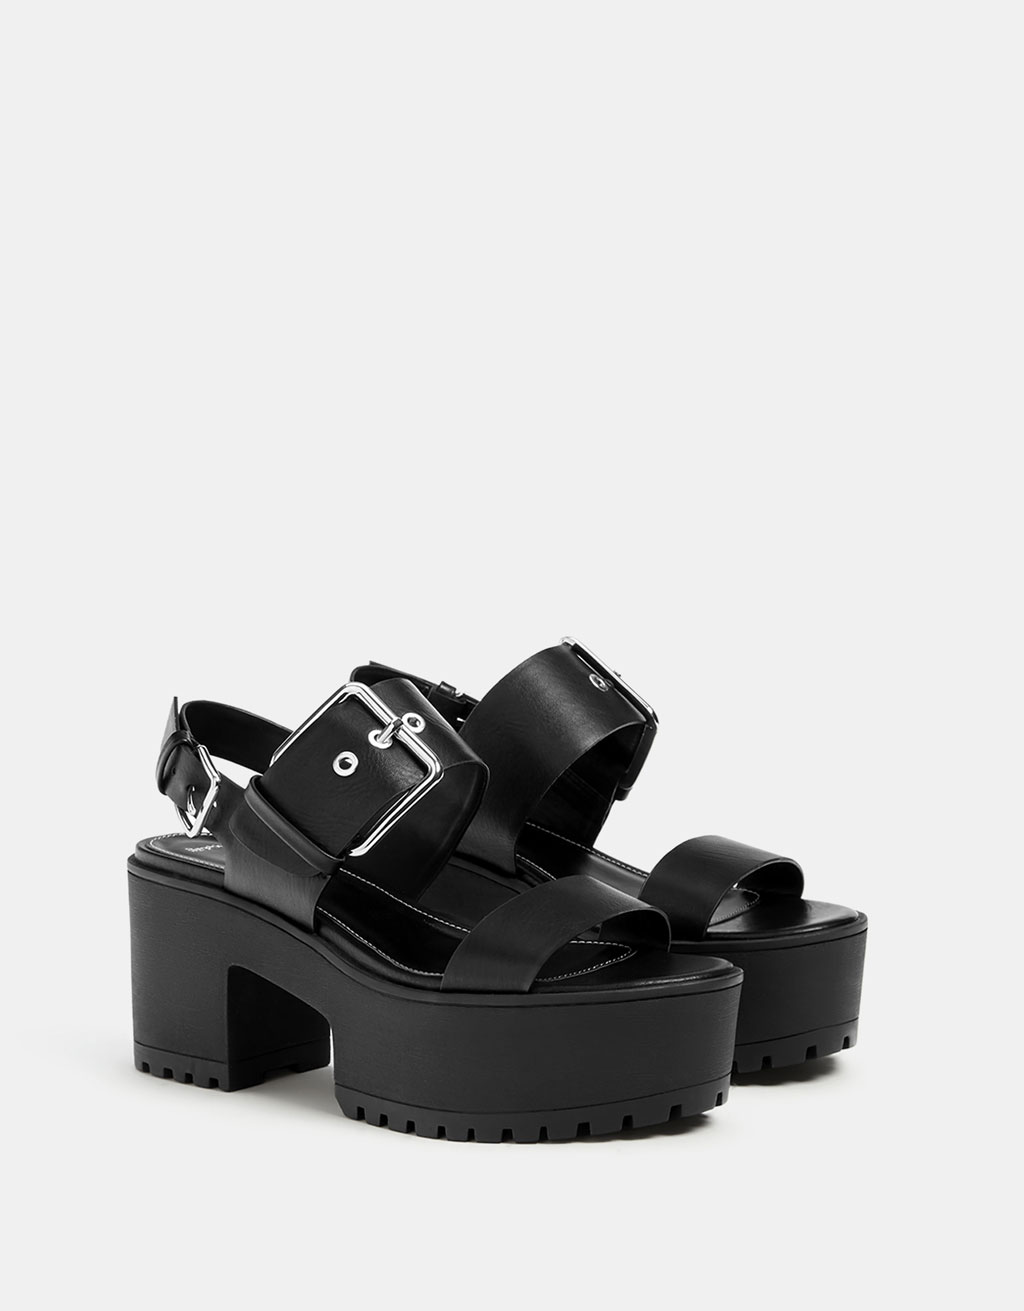 Platform sandals with buckle